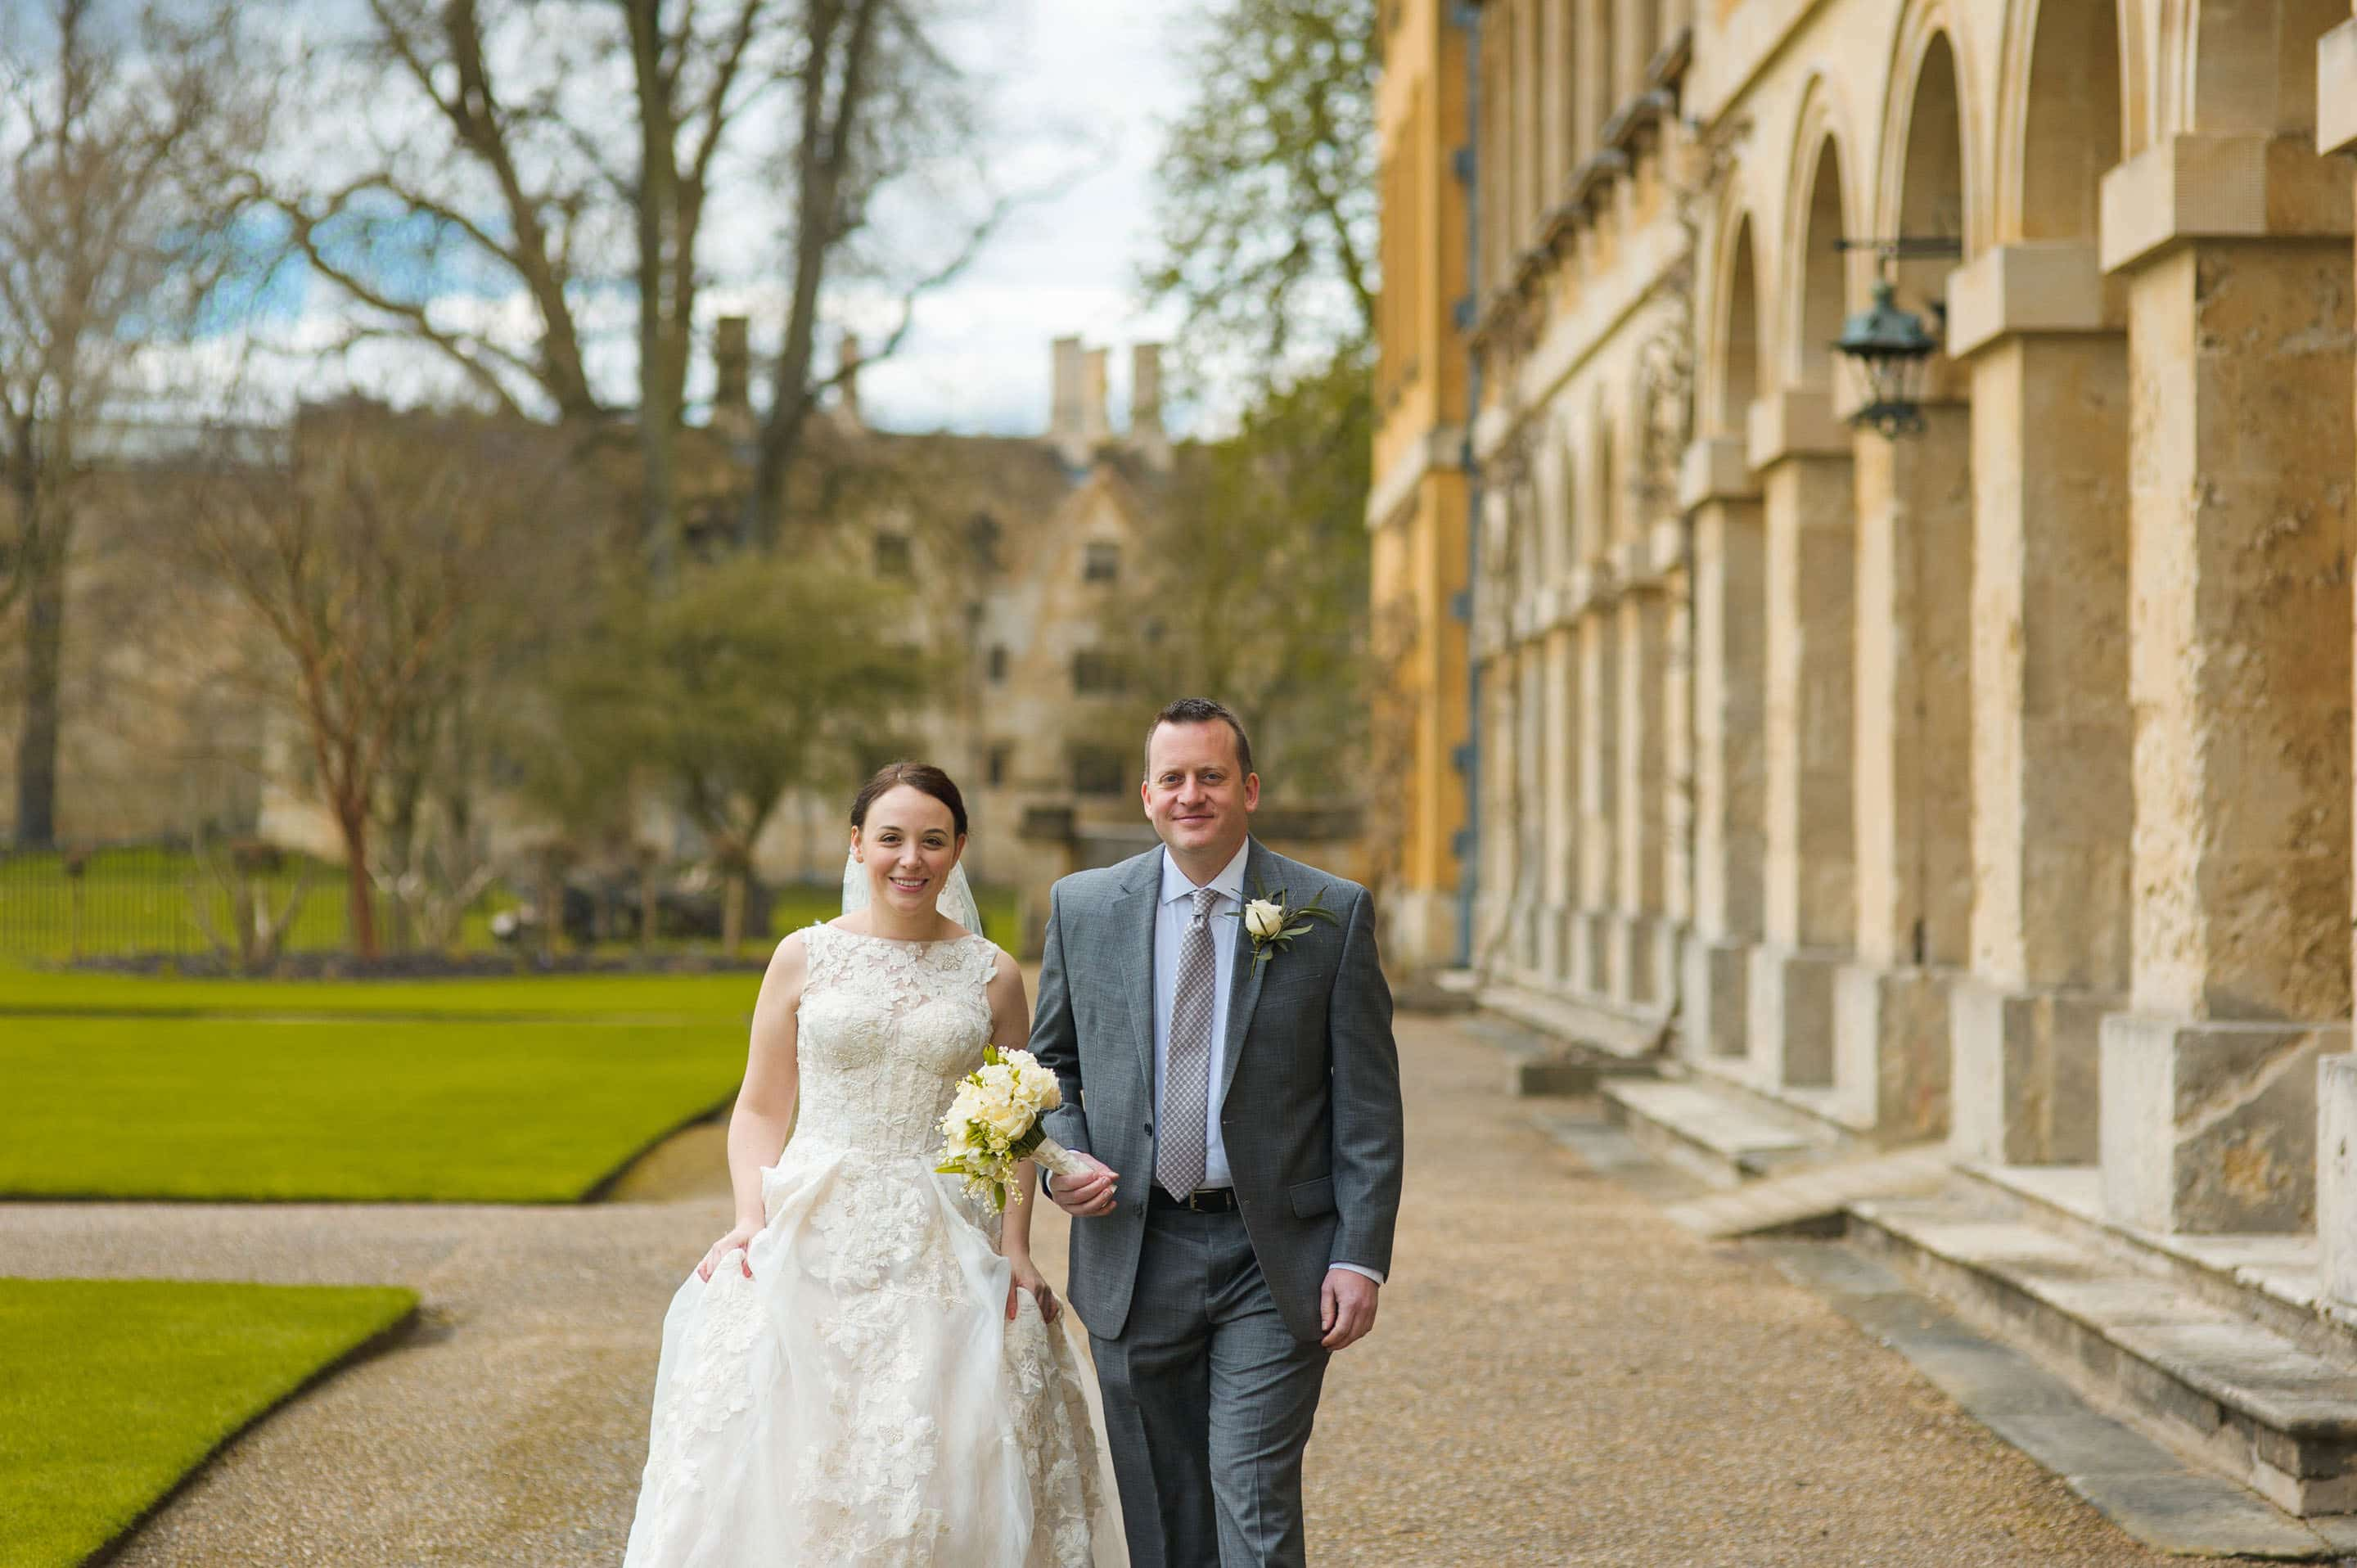 wedding at magdalen college in oxford 9 - Tommie + Virginia | Wedding at Magdalen College in Oxford